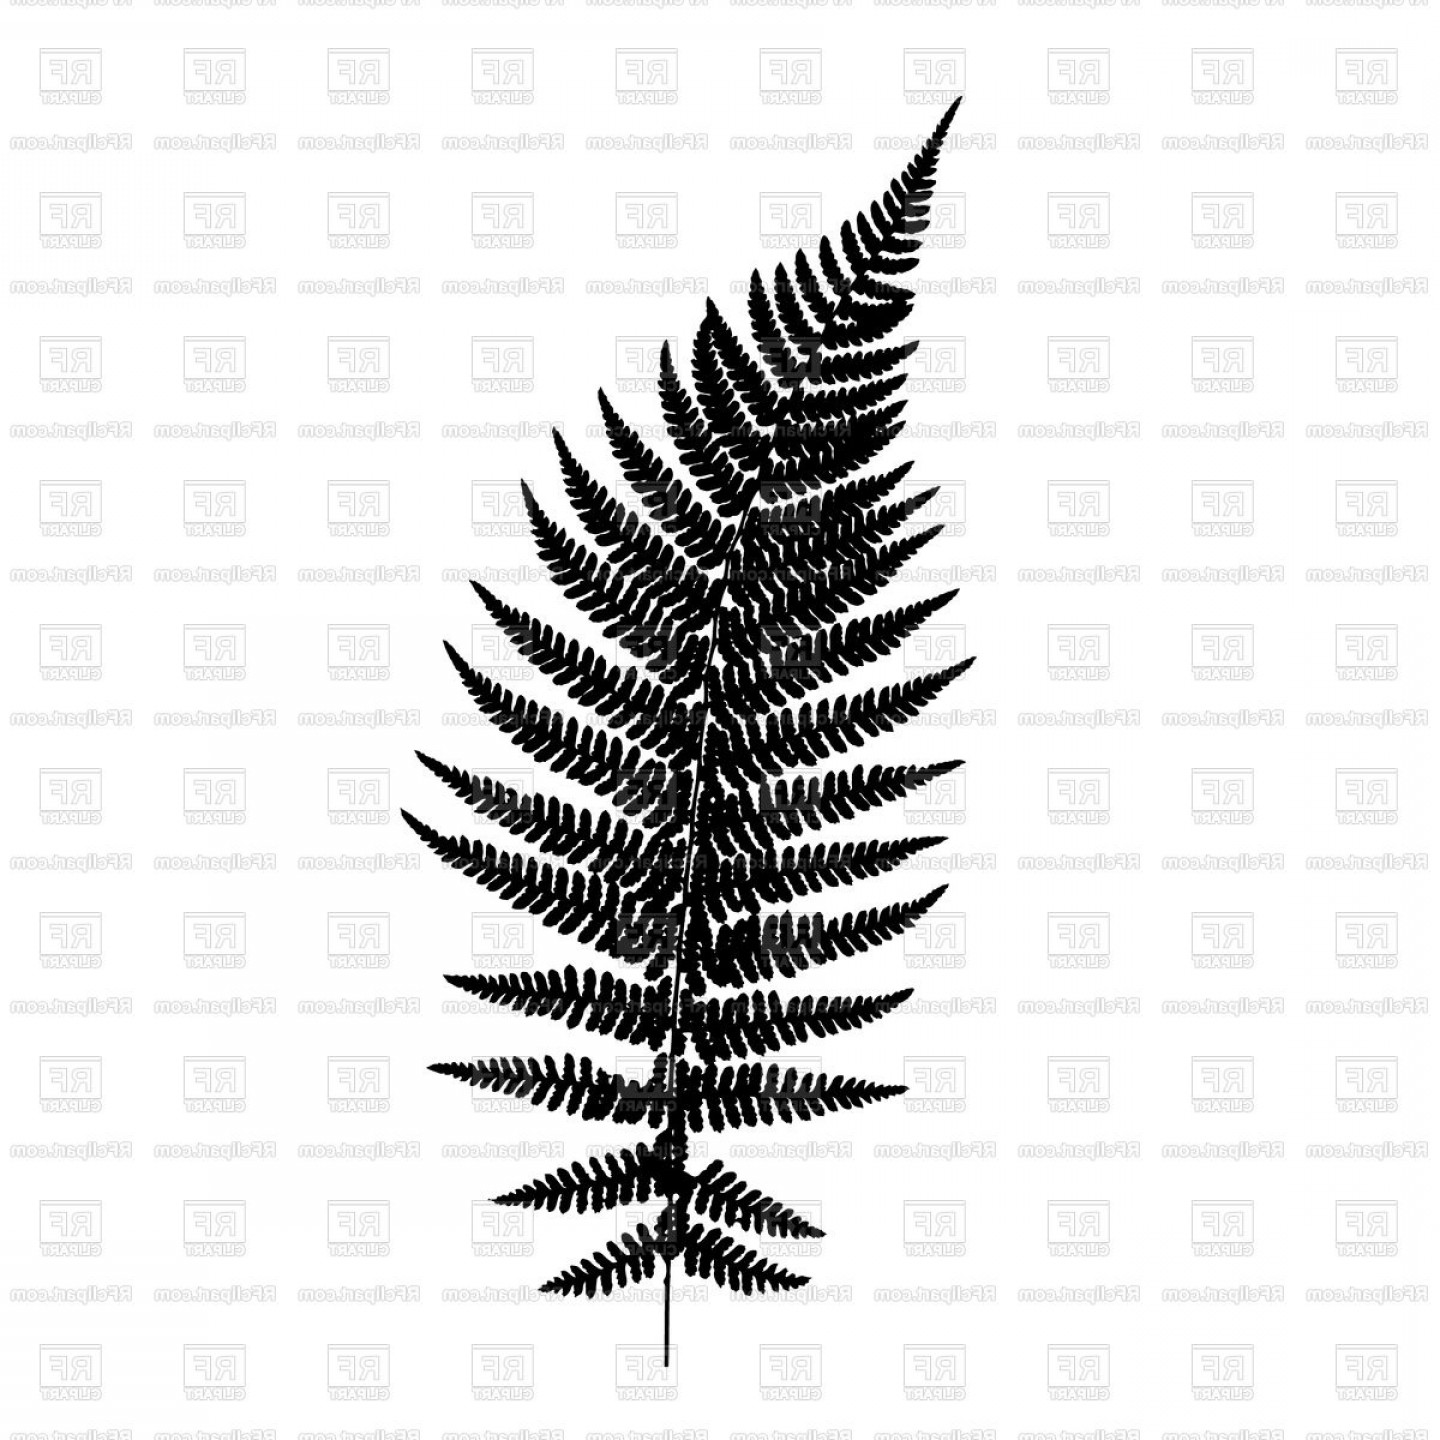 Fern vector clipart svg library download Fern Leaf Silhouette Vector Clipart | SOIDERGI svg library download